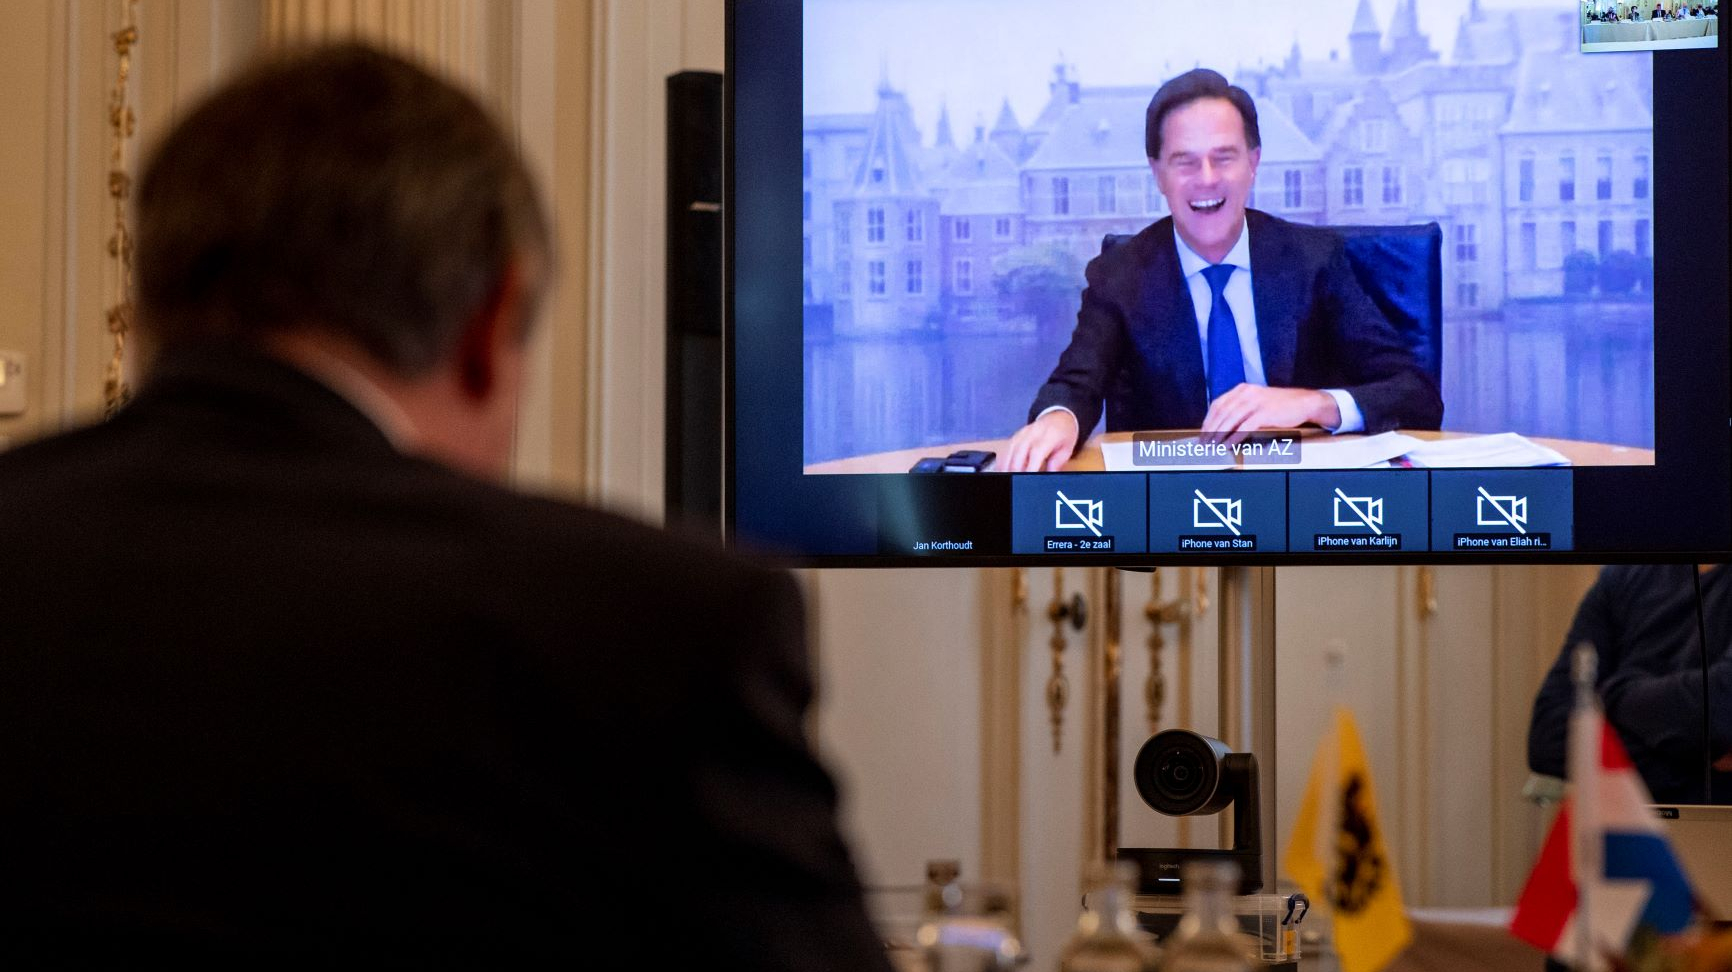 minister-president Jambon in meeting with minister-president Rutte on screen